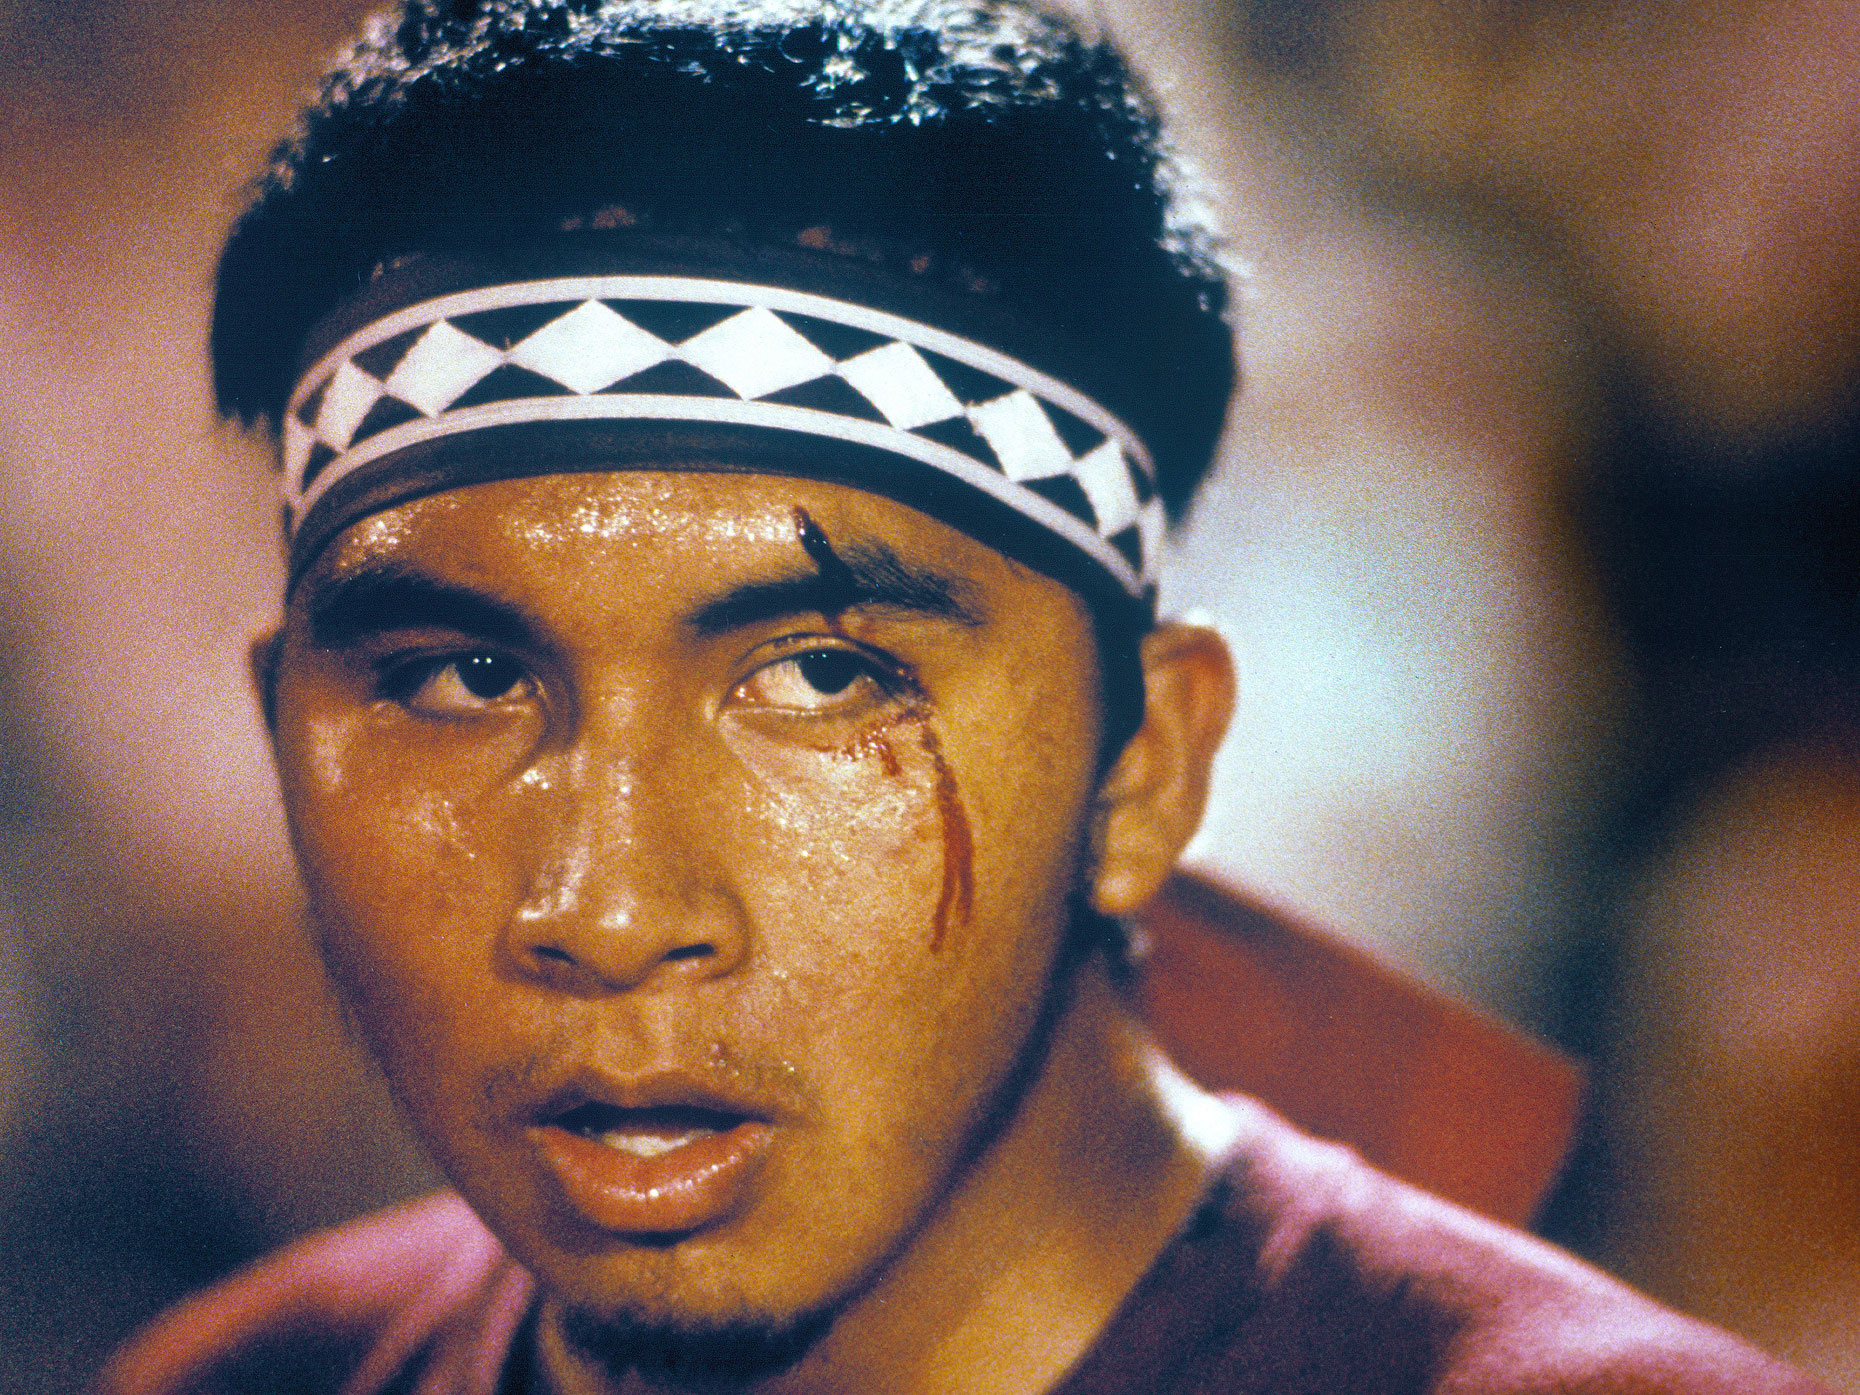 A member of the Choctaw tribe sports a cut over his eye during a stickball game.